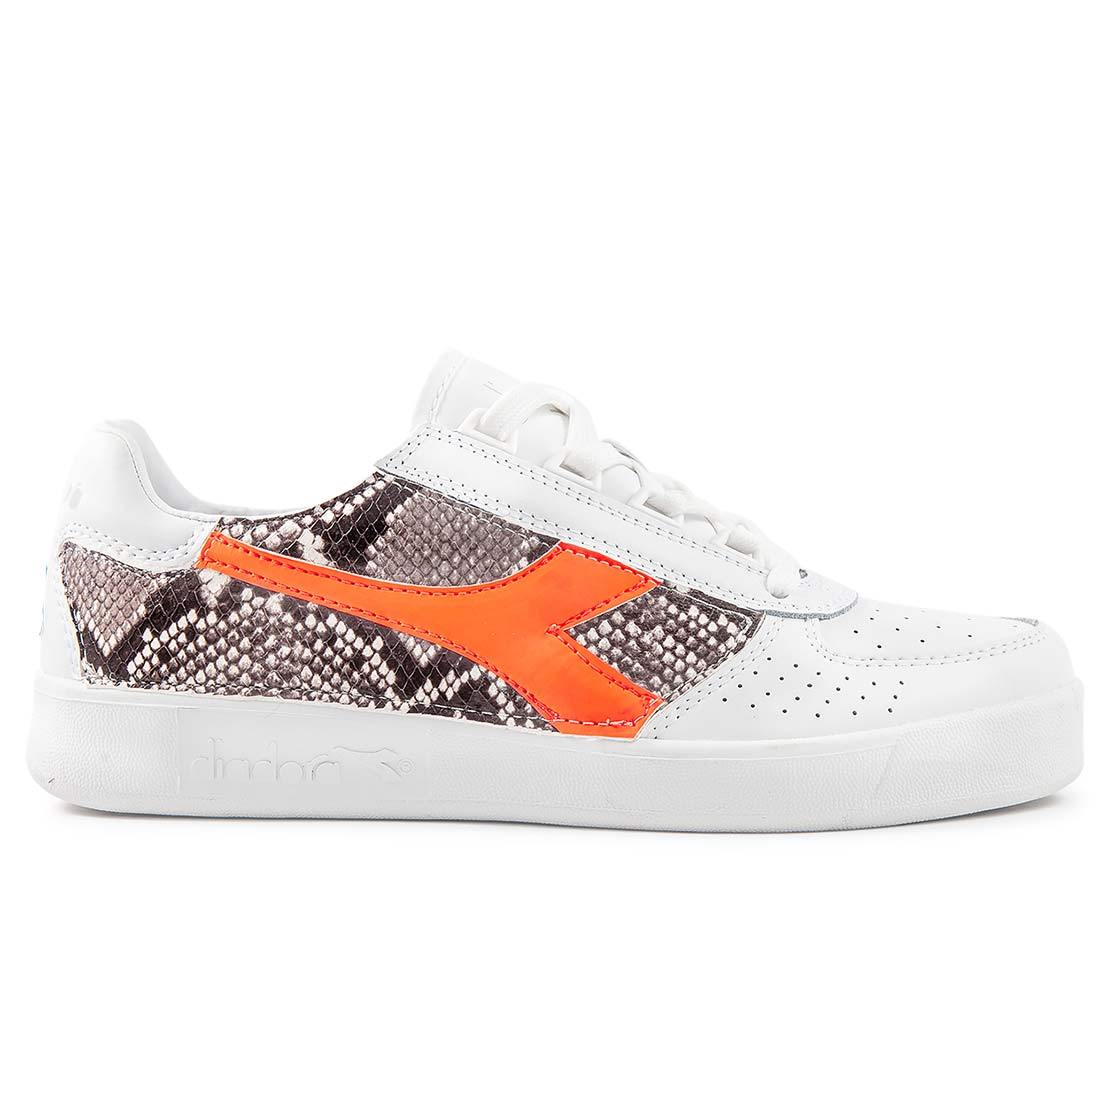 Diadora B.elite pitonate effetto animalier pitone color arancione fluo Racoon-LAB